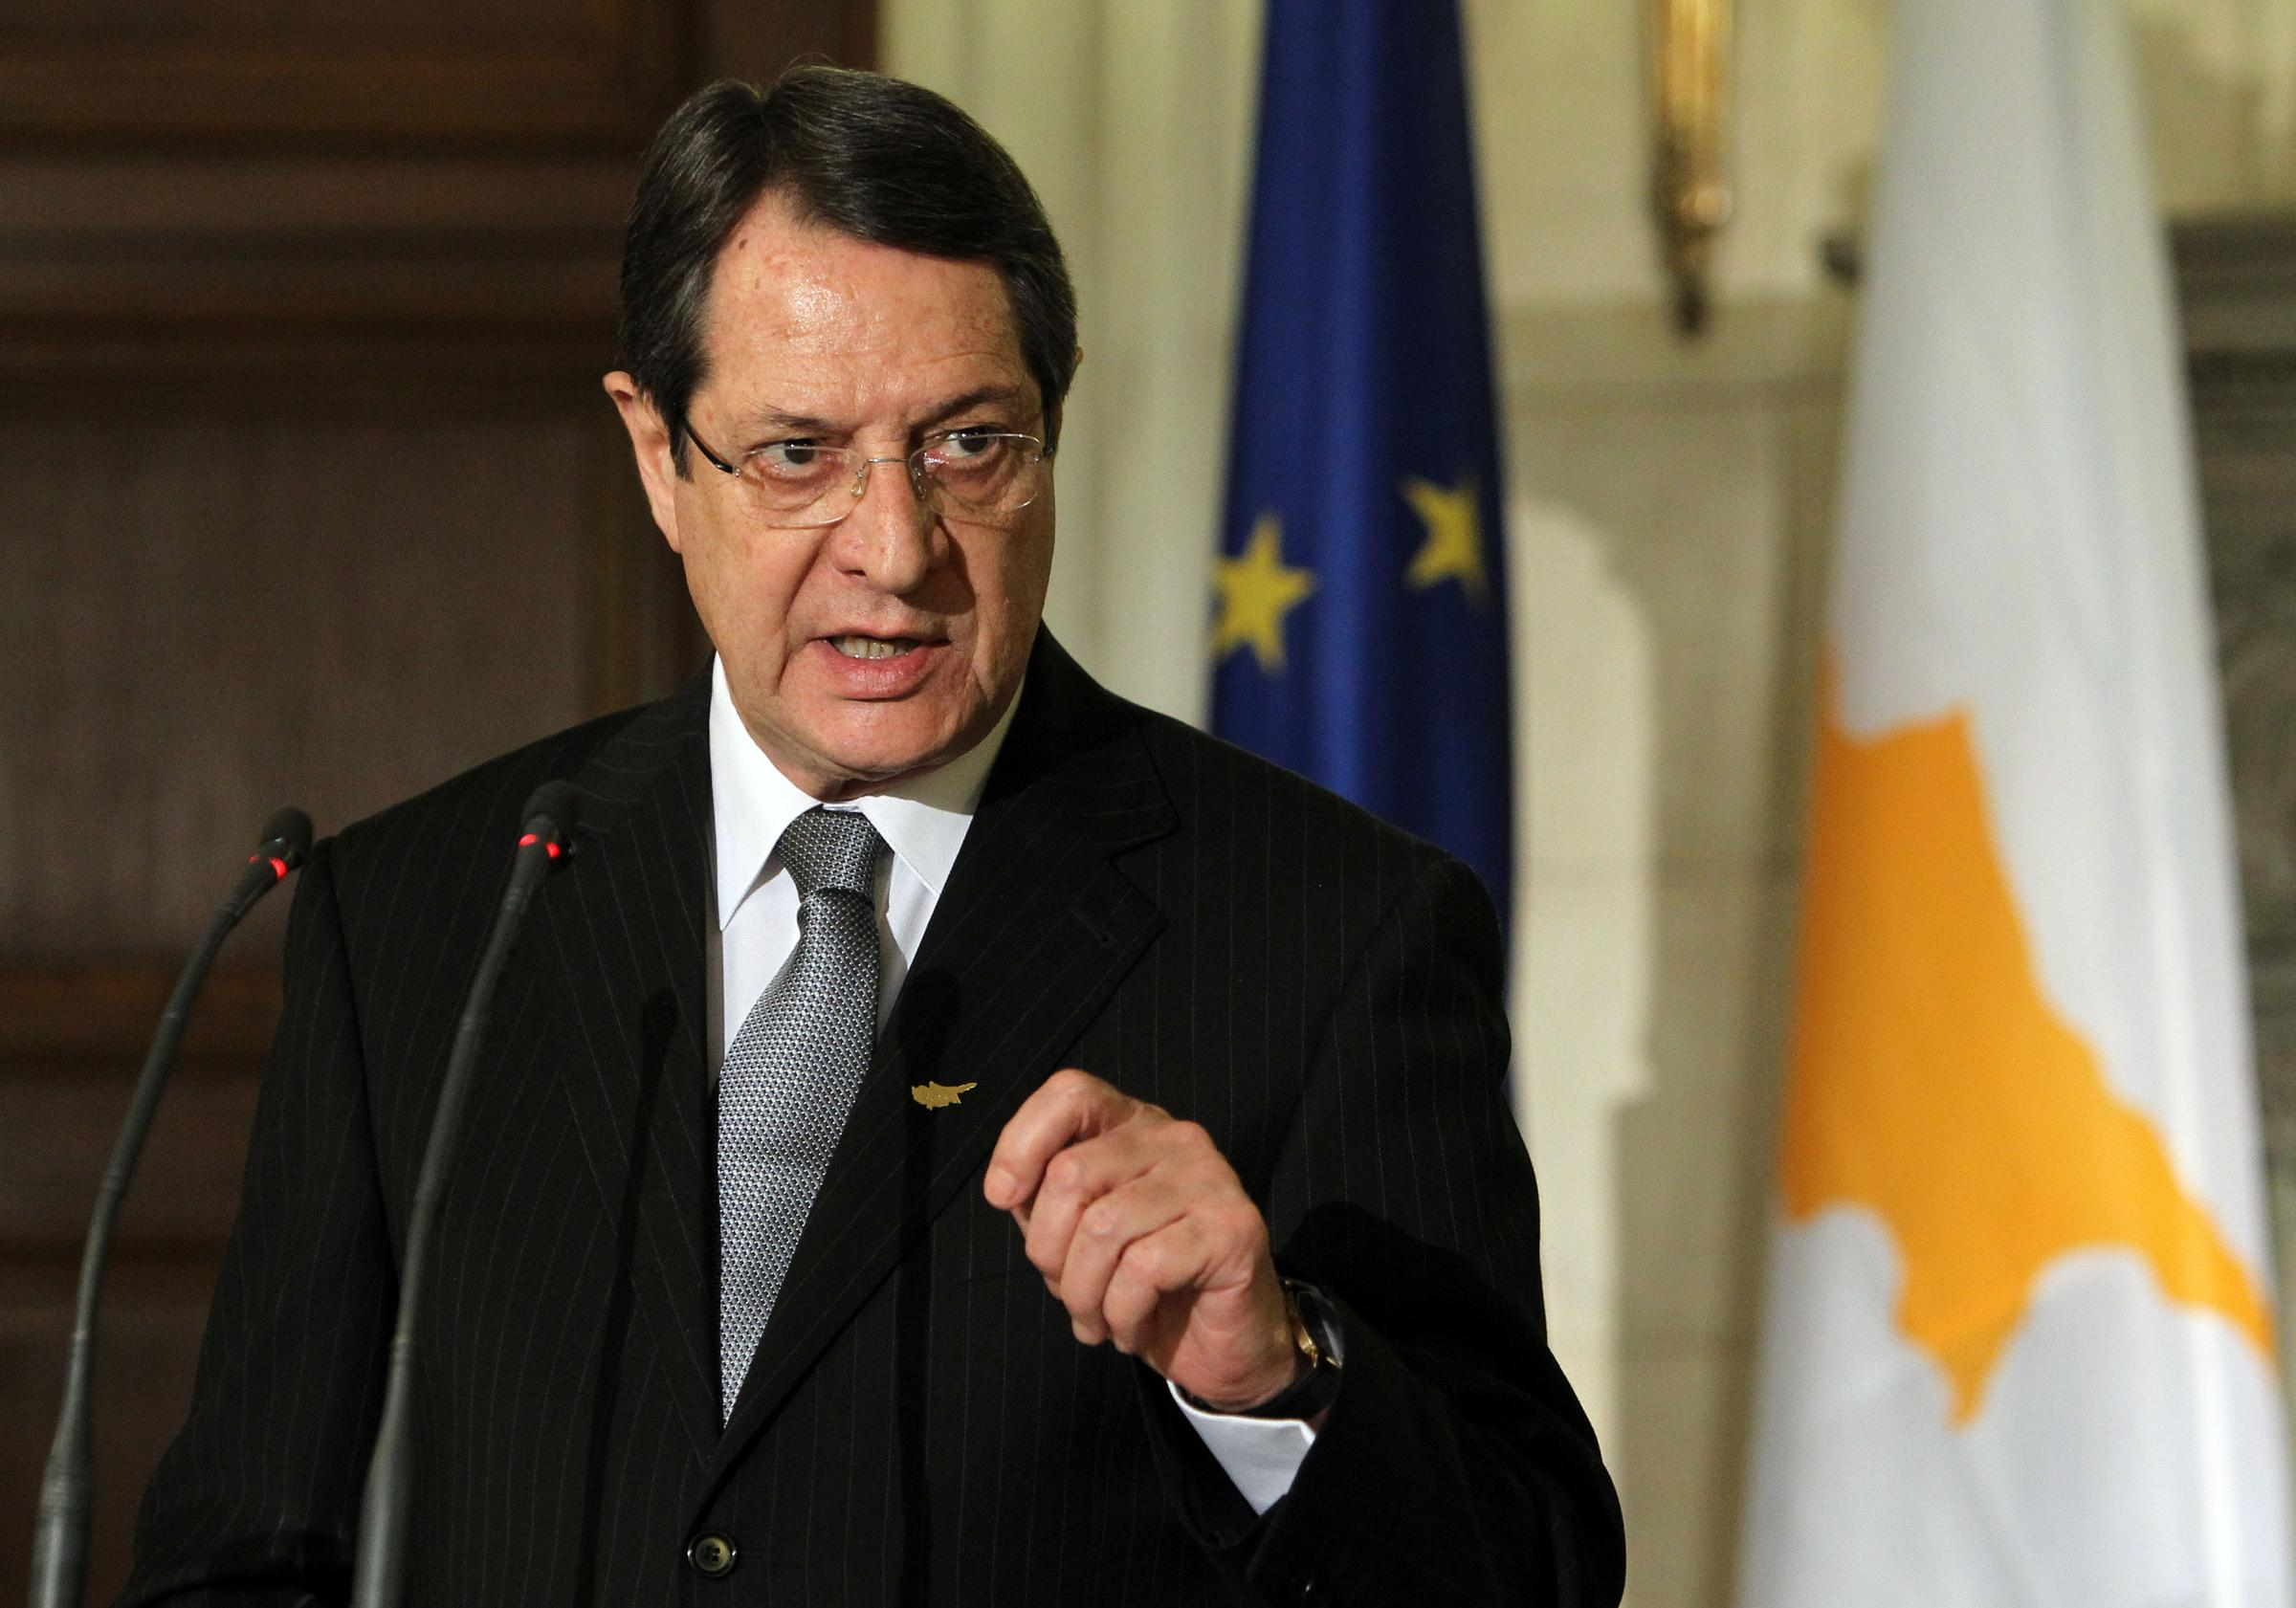 Cypriot President in Ukraine for official visit